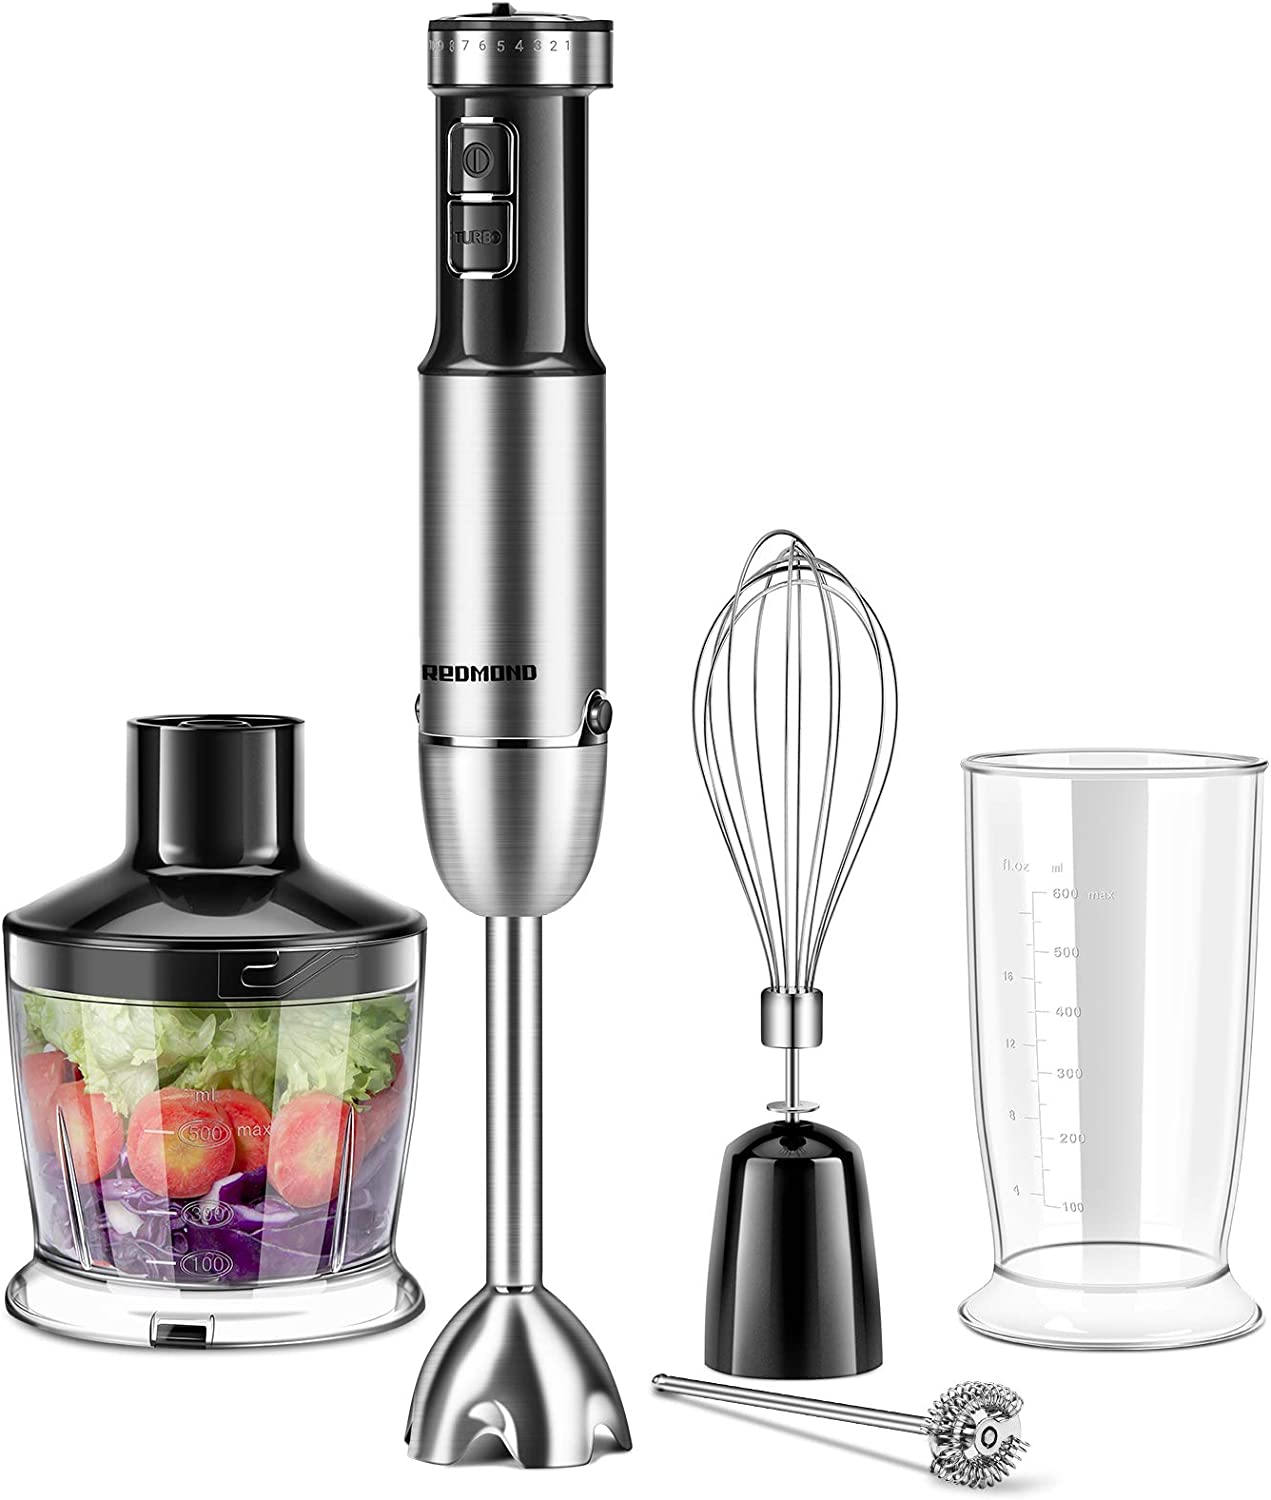 REDMOND 5-in-1 Immersion Hand Blender Multifunctional, 12 Speed Stainless Steel Immersion Stick Blender with Milk Frother, 500ml Chopper, Egg Whisk, 600ml Container, BPA-Free, Black, HB005